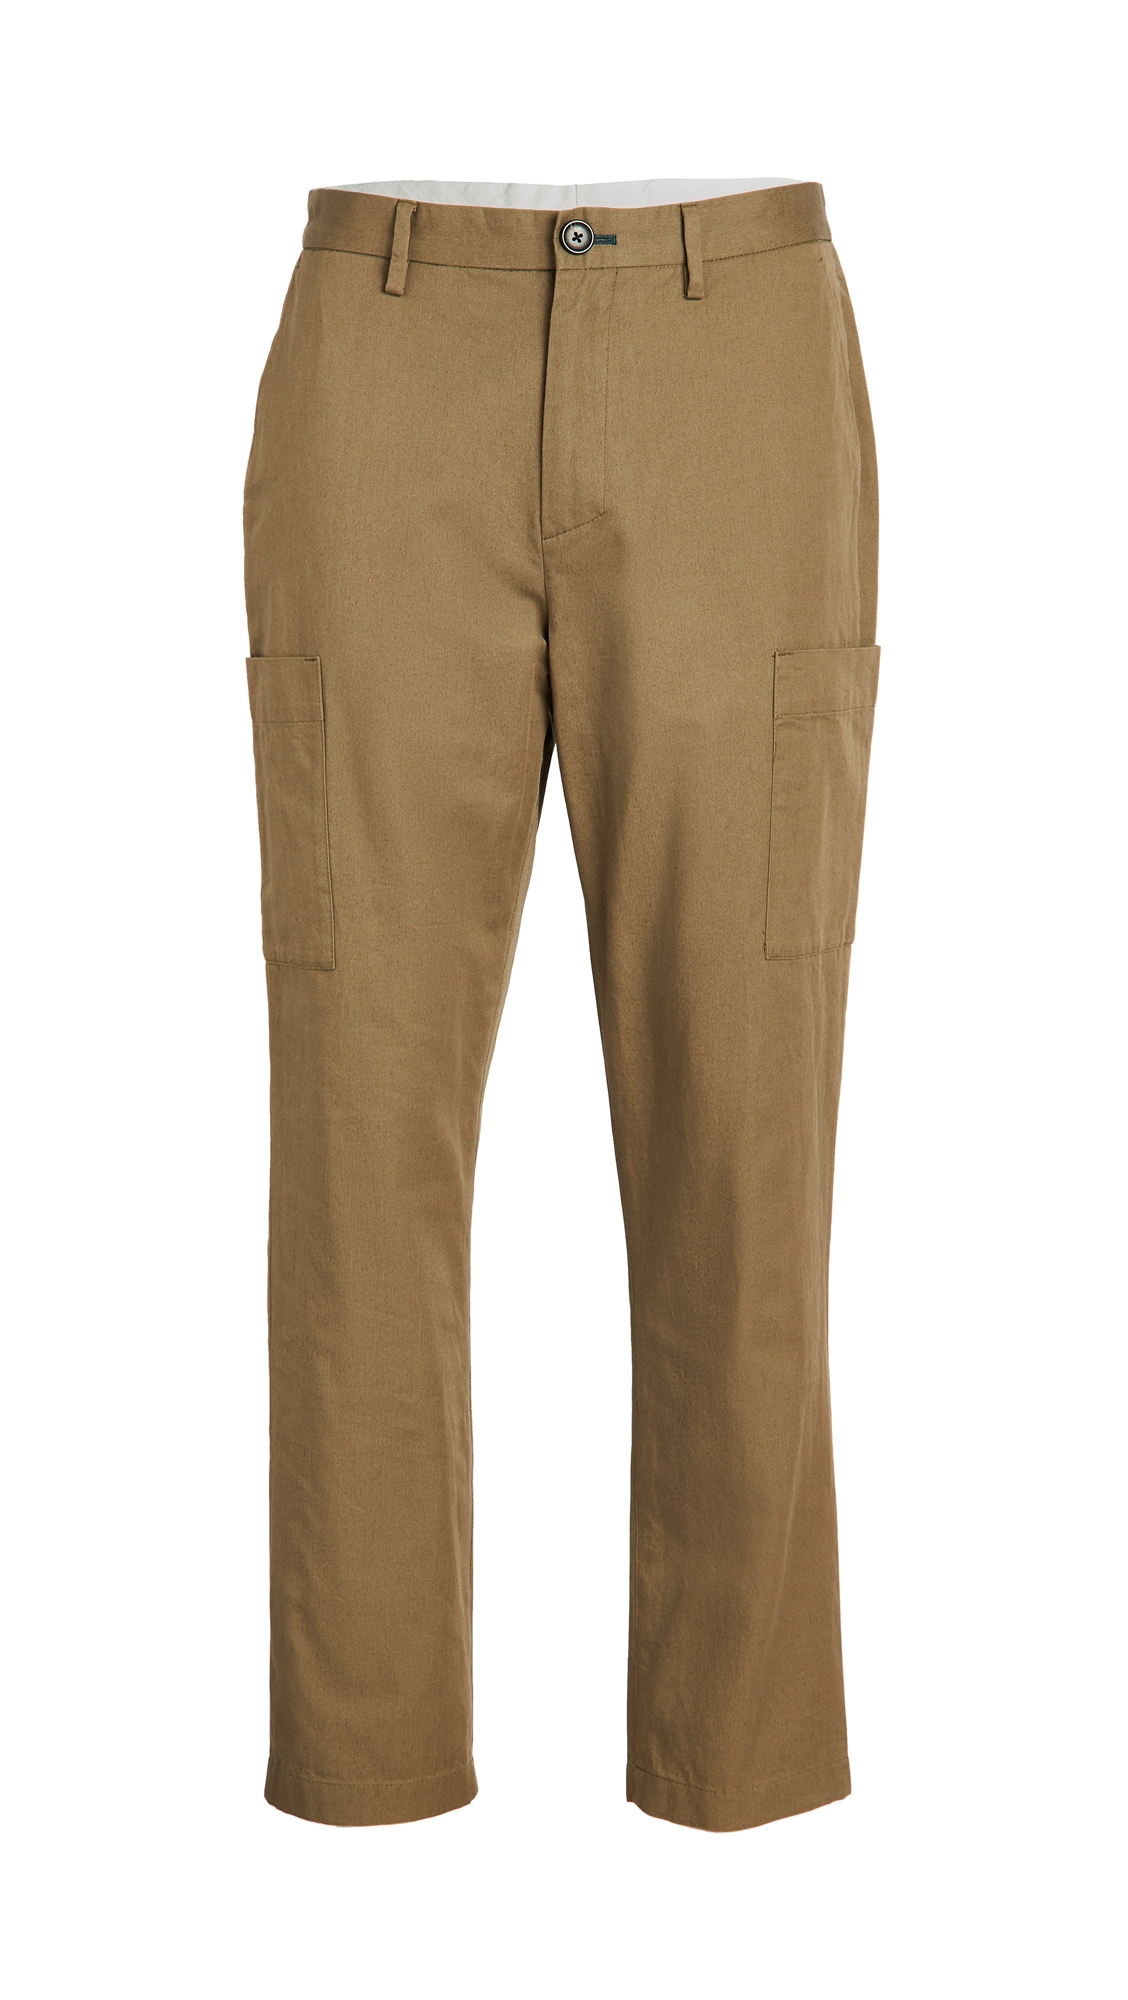 2 Pocket Trousers